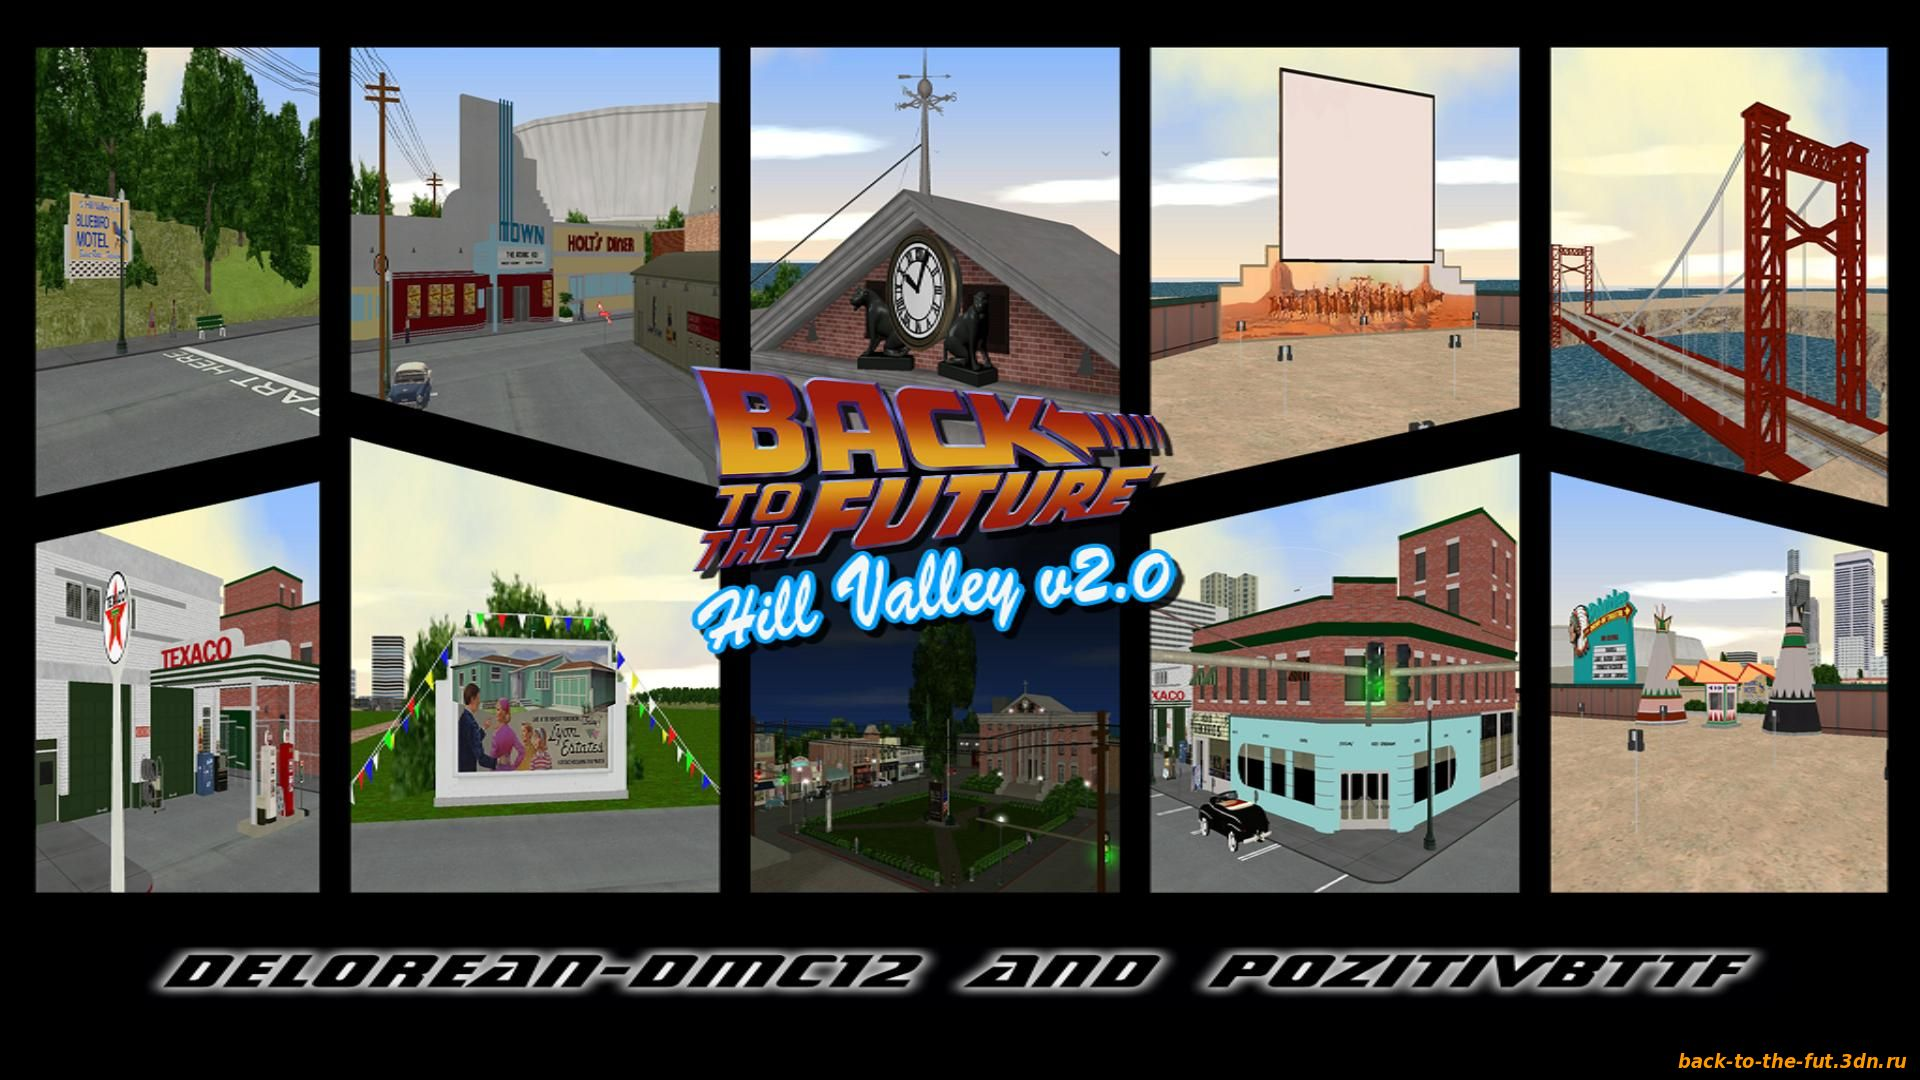 GTA Vice City BTTF Hill Valley 0.2e rus v2.0 by Delorean-DMC12 and PozitiVBttF